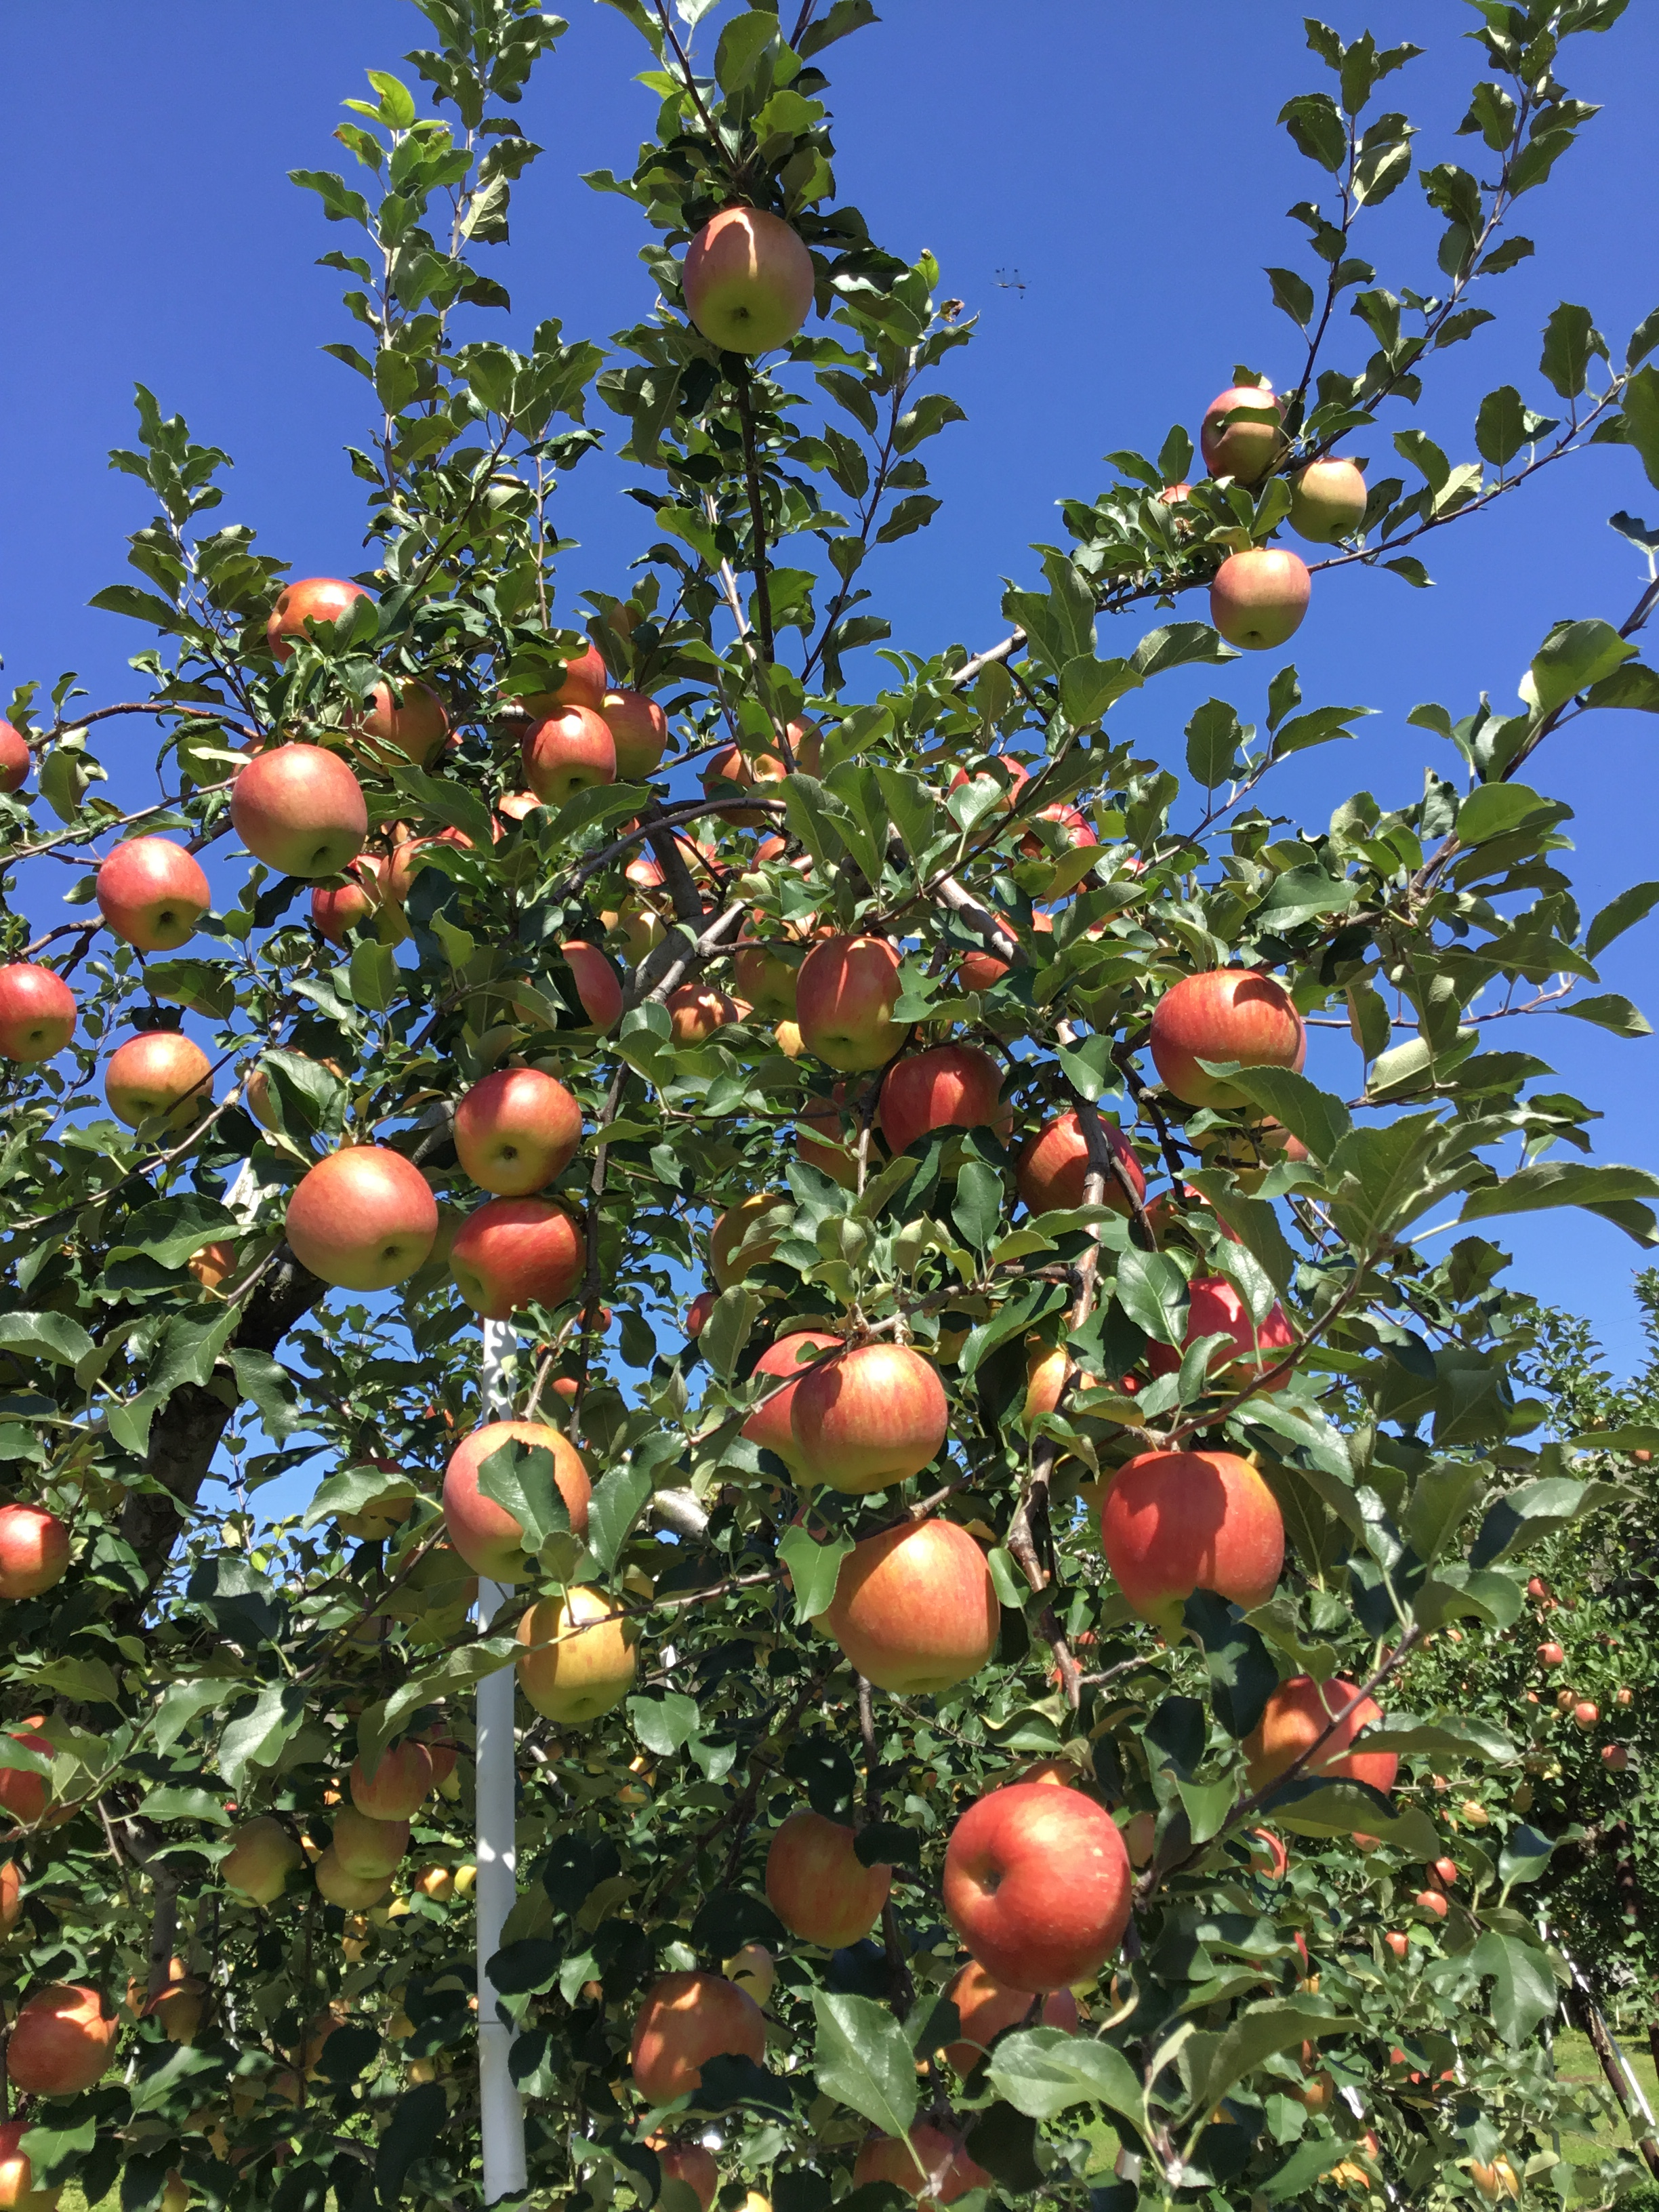 AUTUMN FRUIT-PICKING IN NAGANO: 6 APPLE VARIETIES, ALL YOU CAN EAT ...